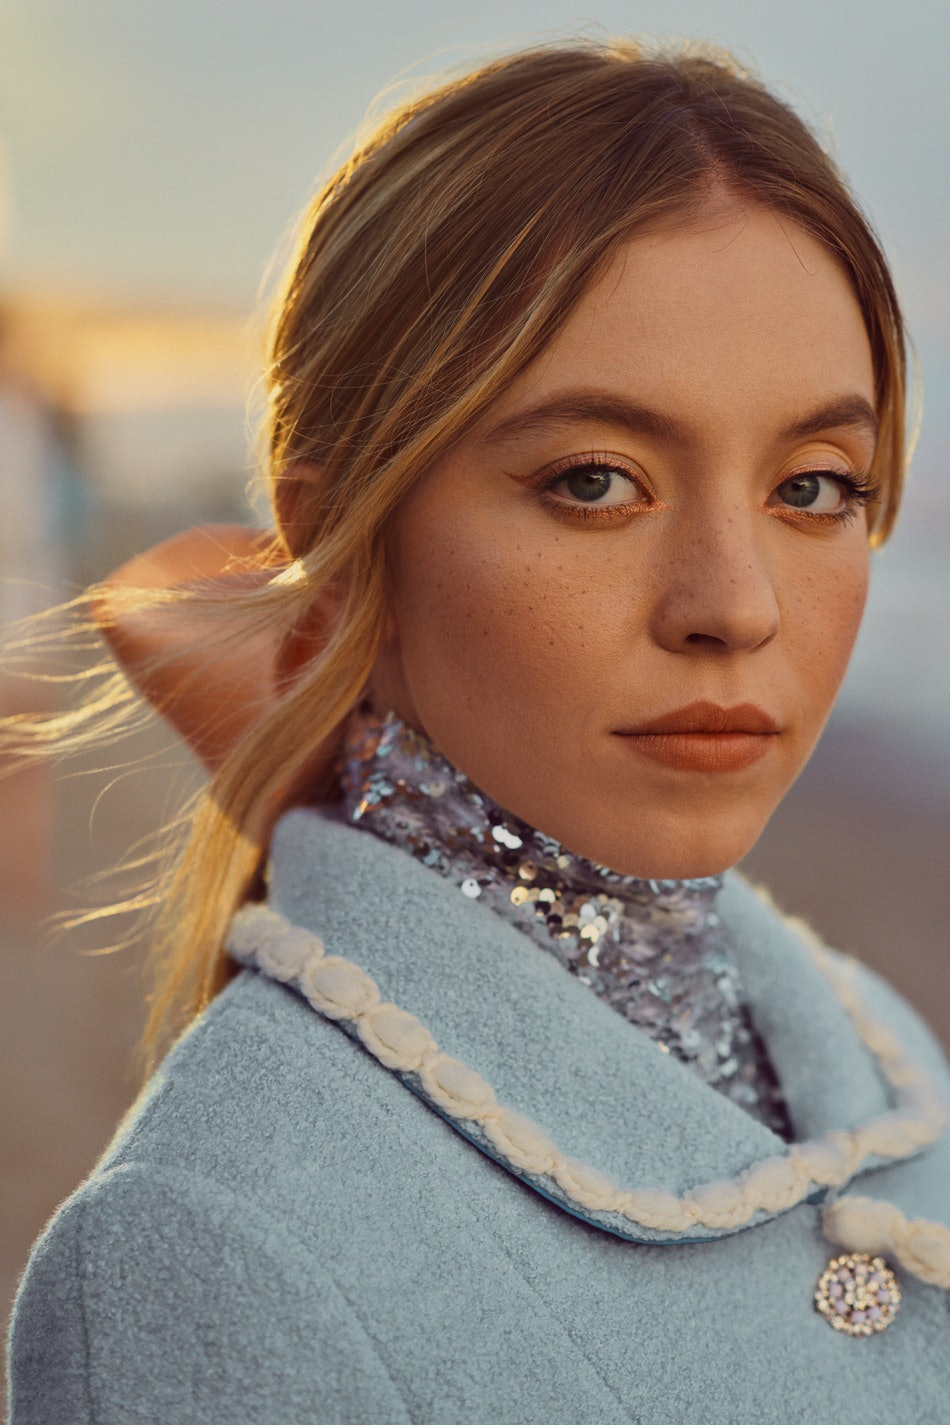 'Euphoria' star Sydney Sweeney for Elite Daily's Like Magic 2019 issue.